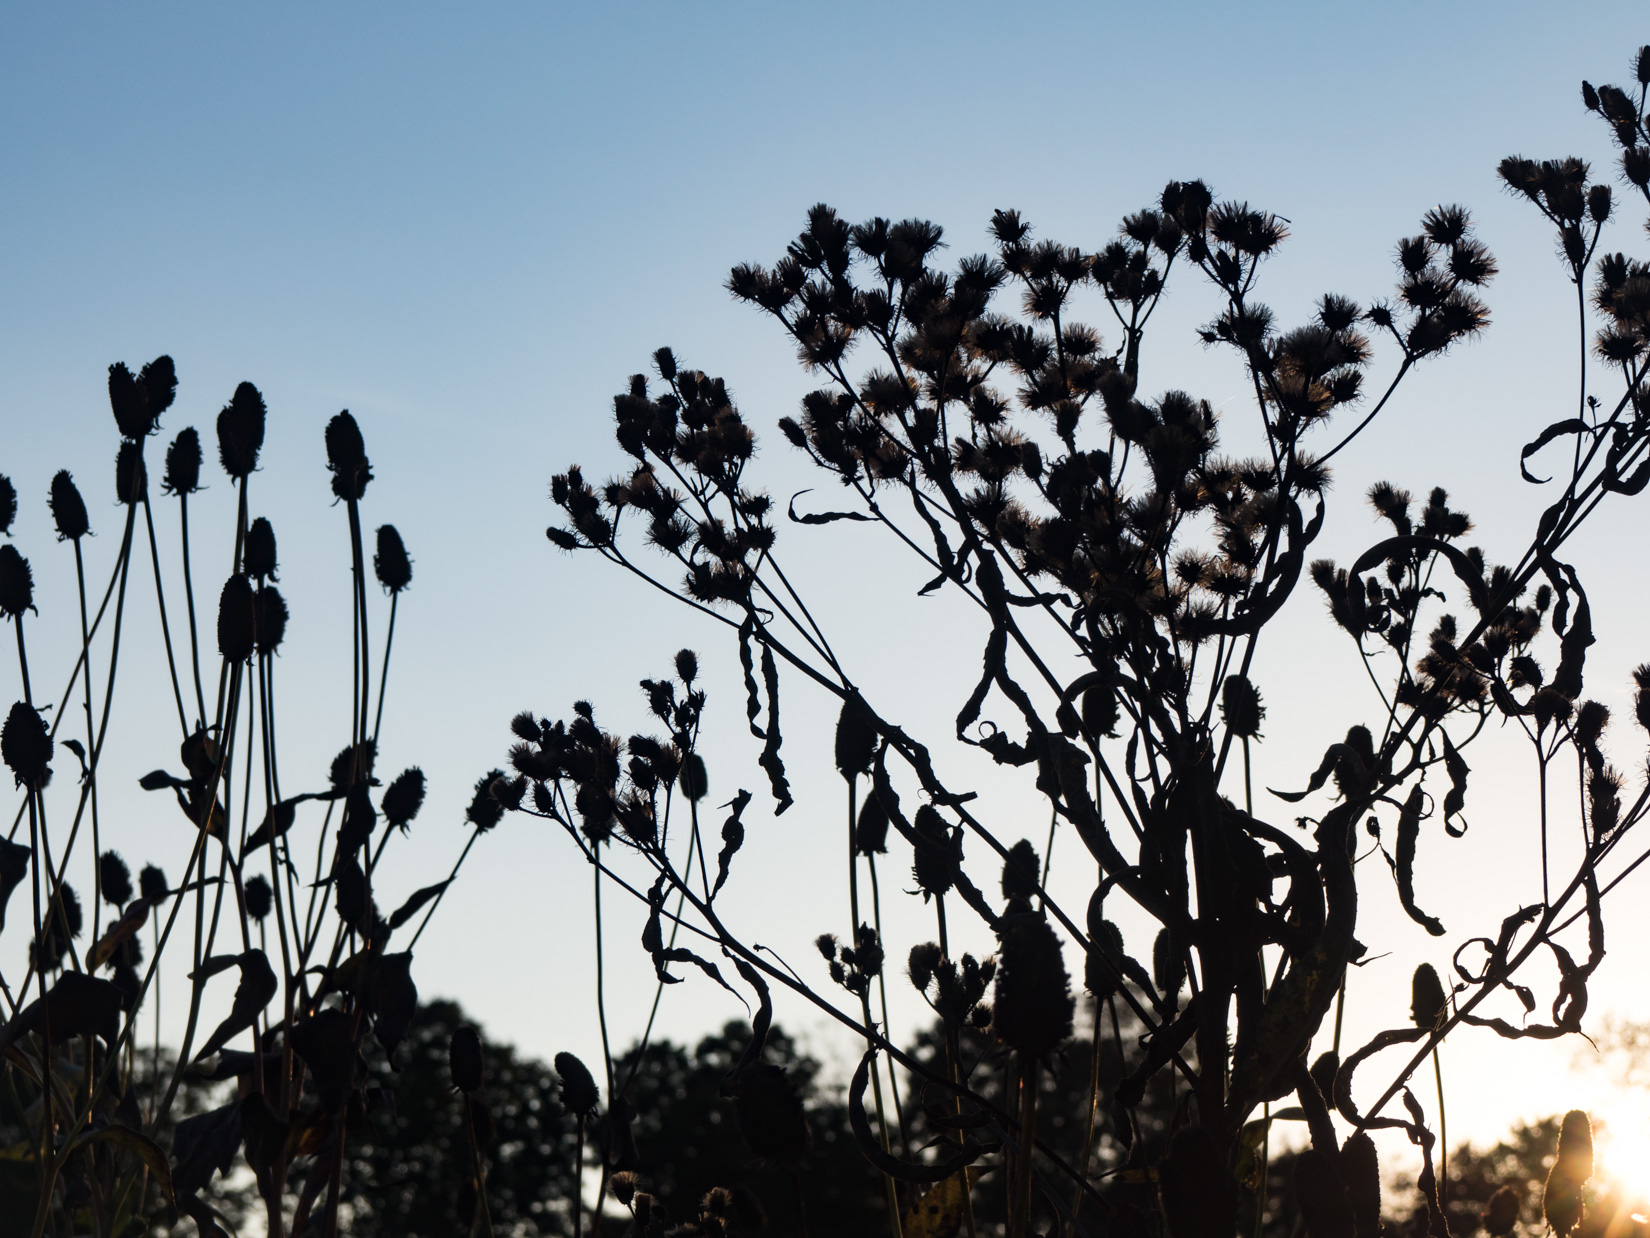 Flowers Silhouetted in Sunset